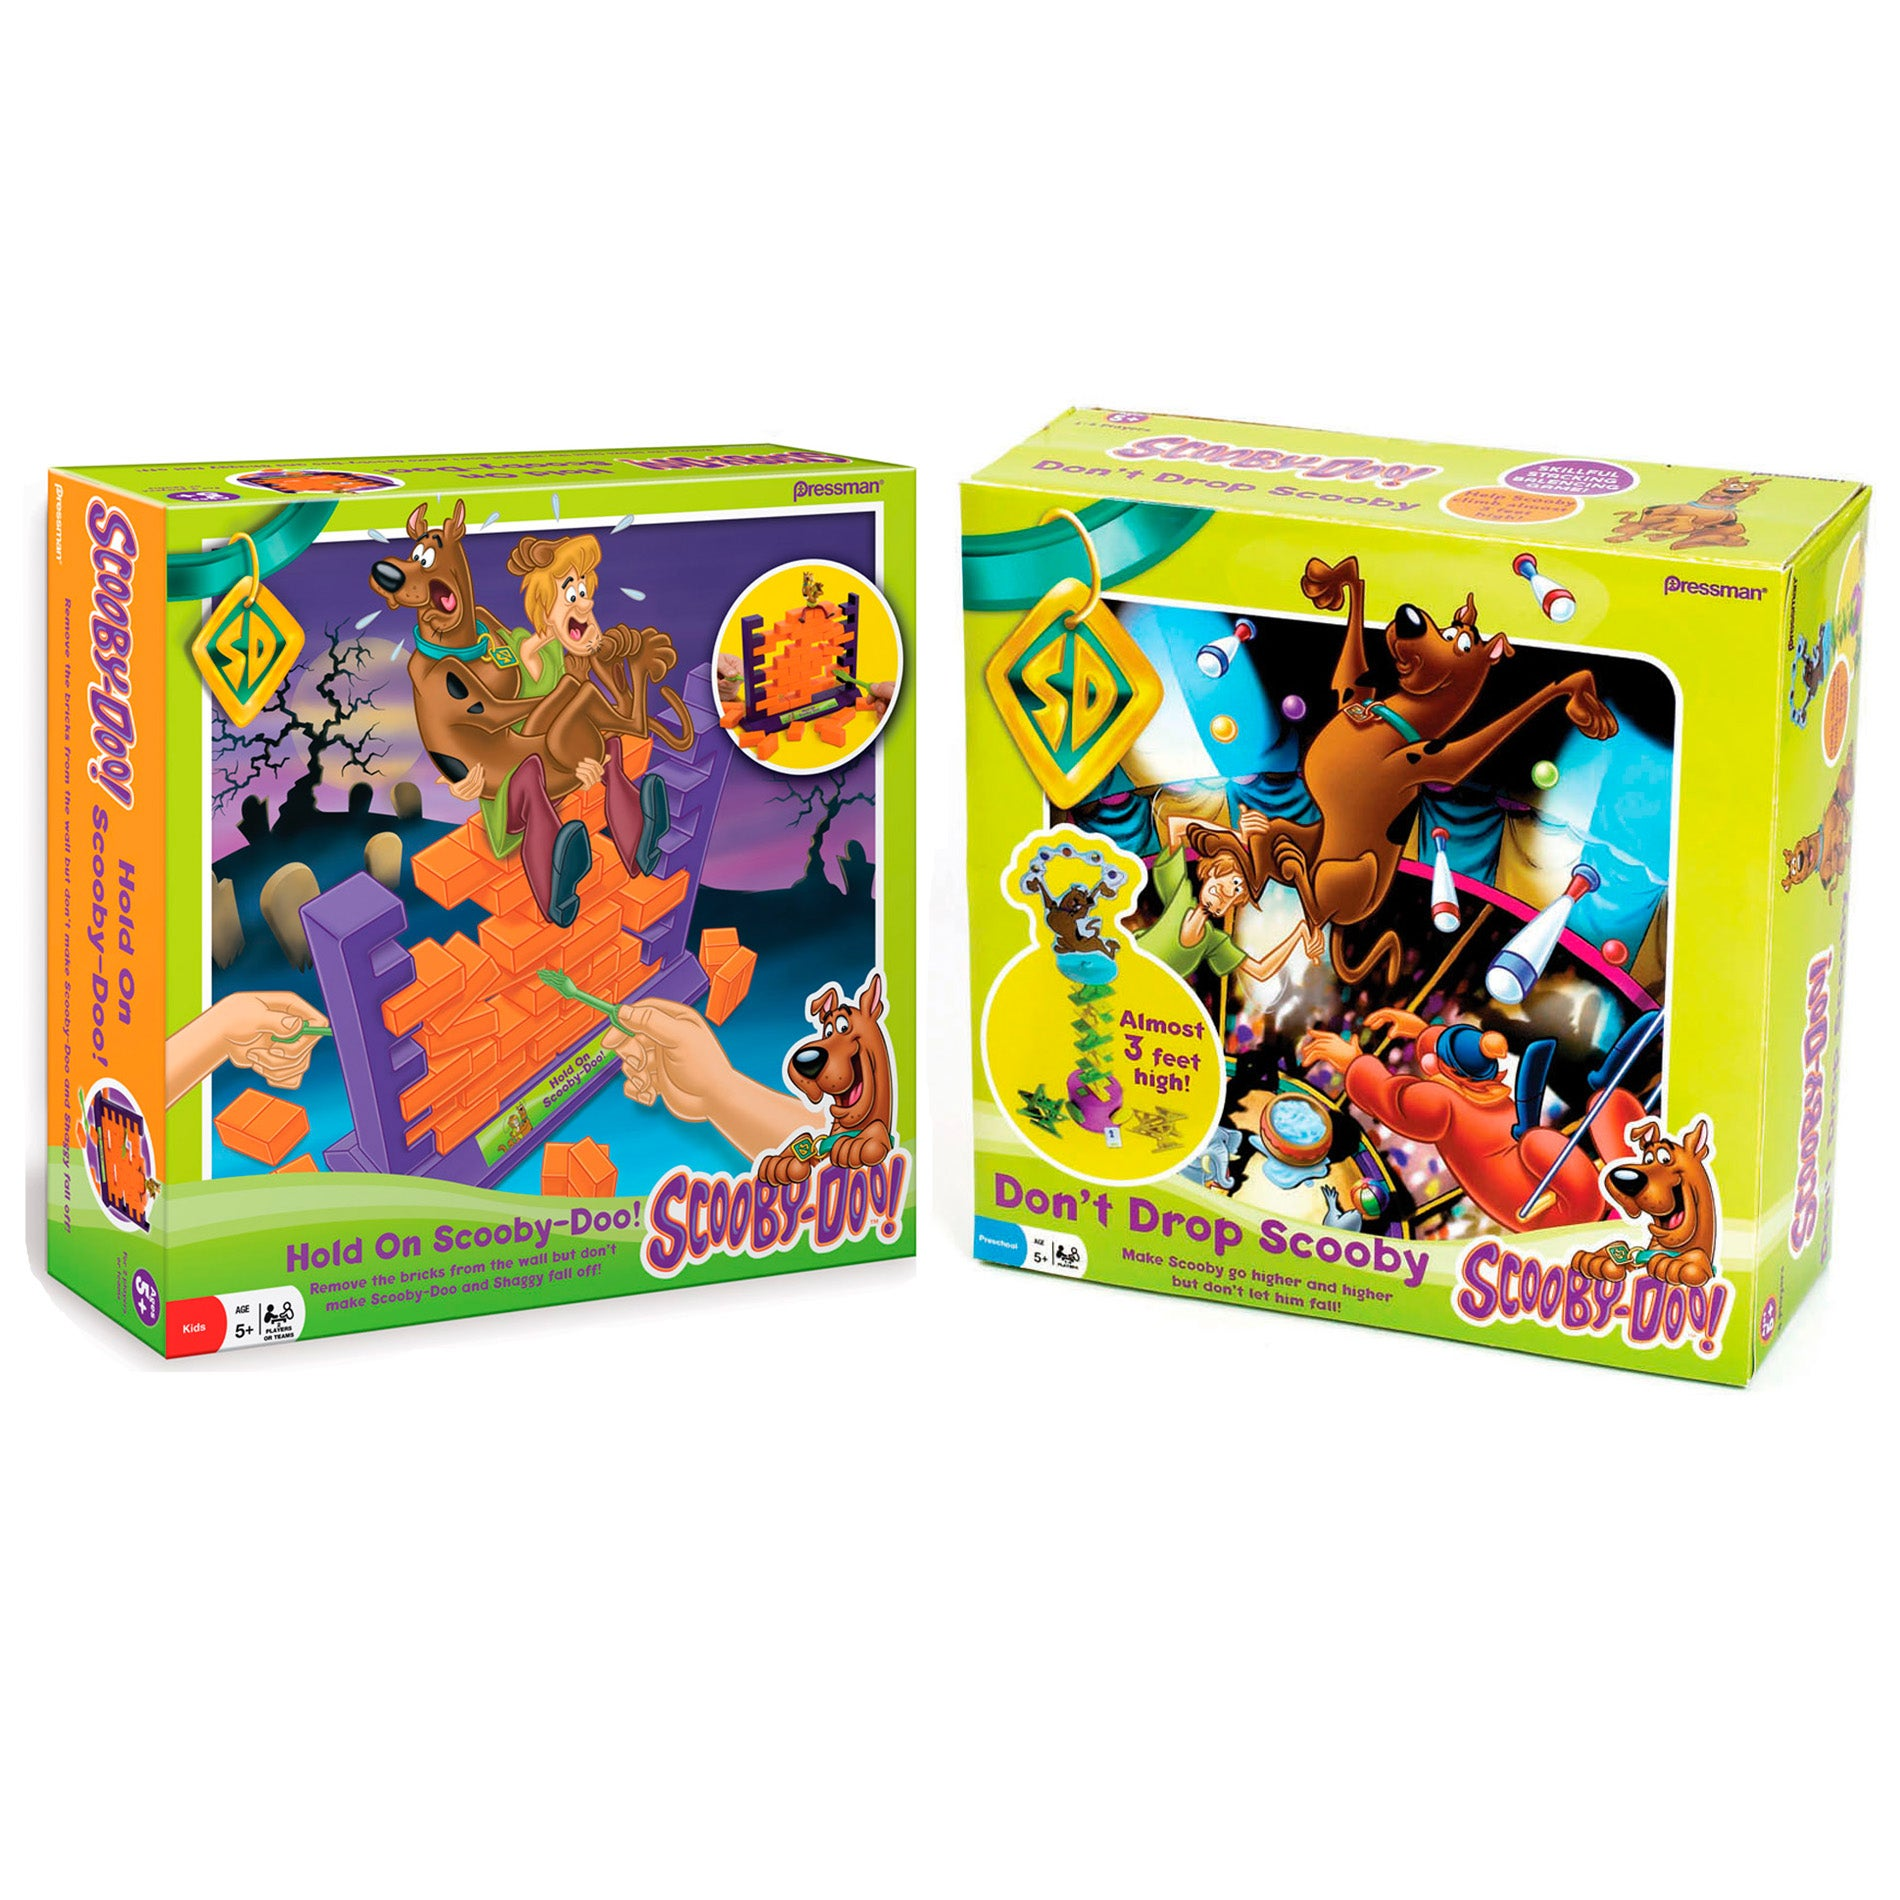 Pressman Games Hold On and Don't Drop Scooby Game Set